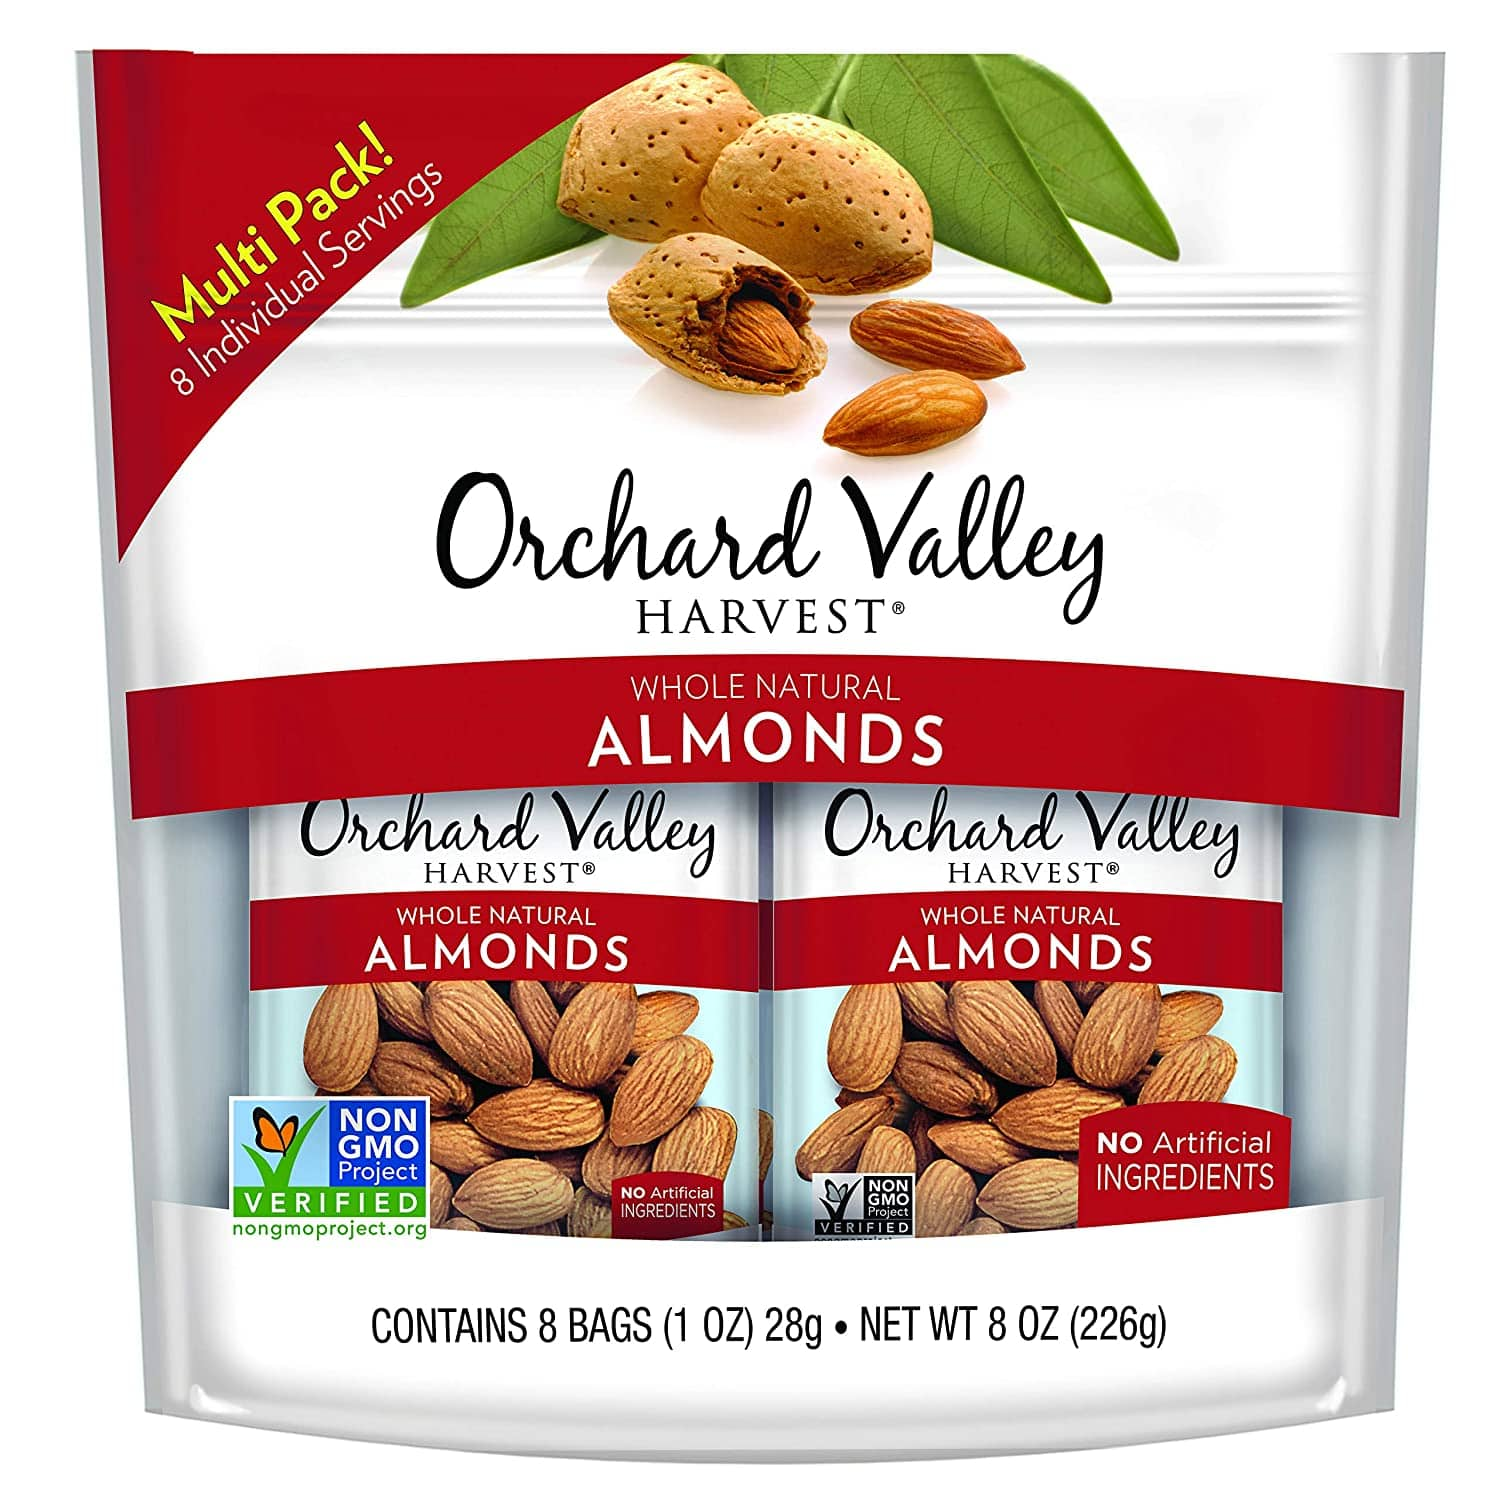 Orchard Valley Harvest Whole Natural Almonds, 1 oz (Pack of 8) $2.82